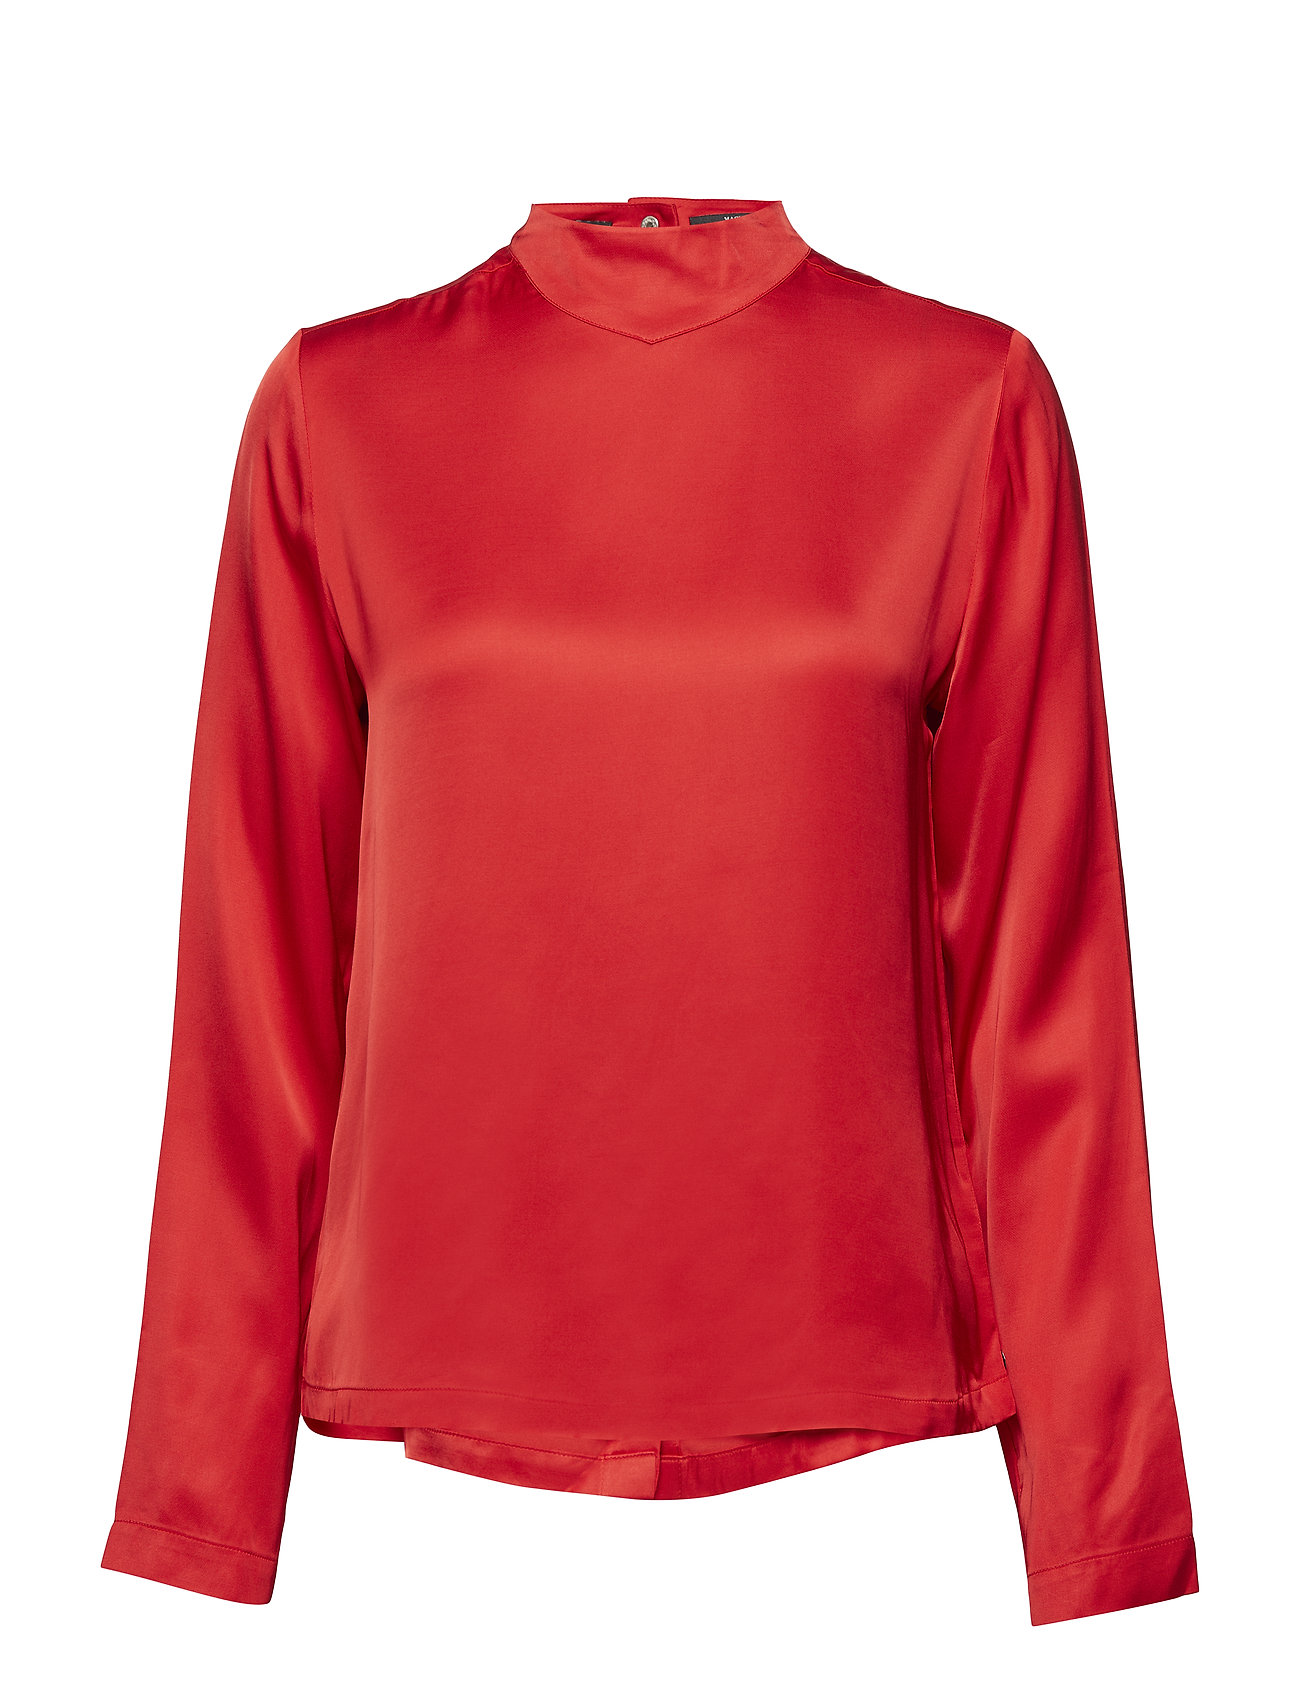 Scotch & Soda High neck top with press buttons at backpanel - MARS RED